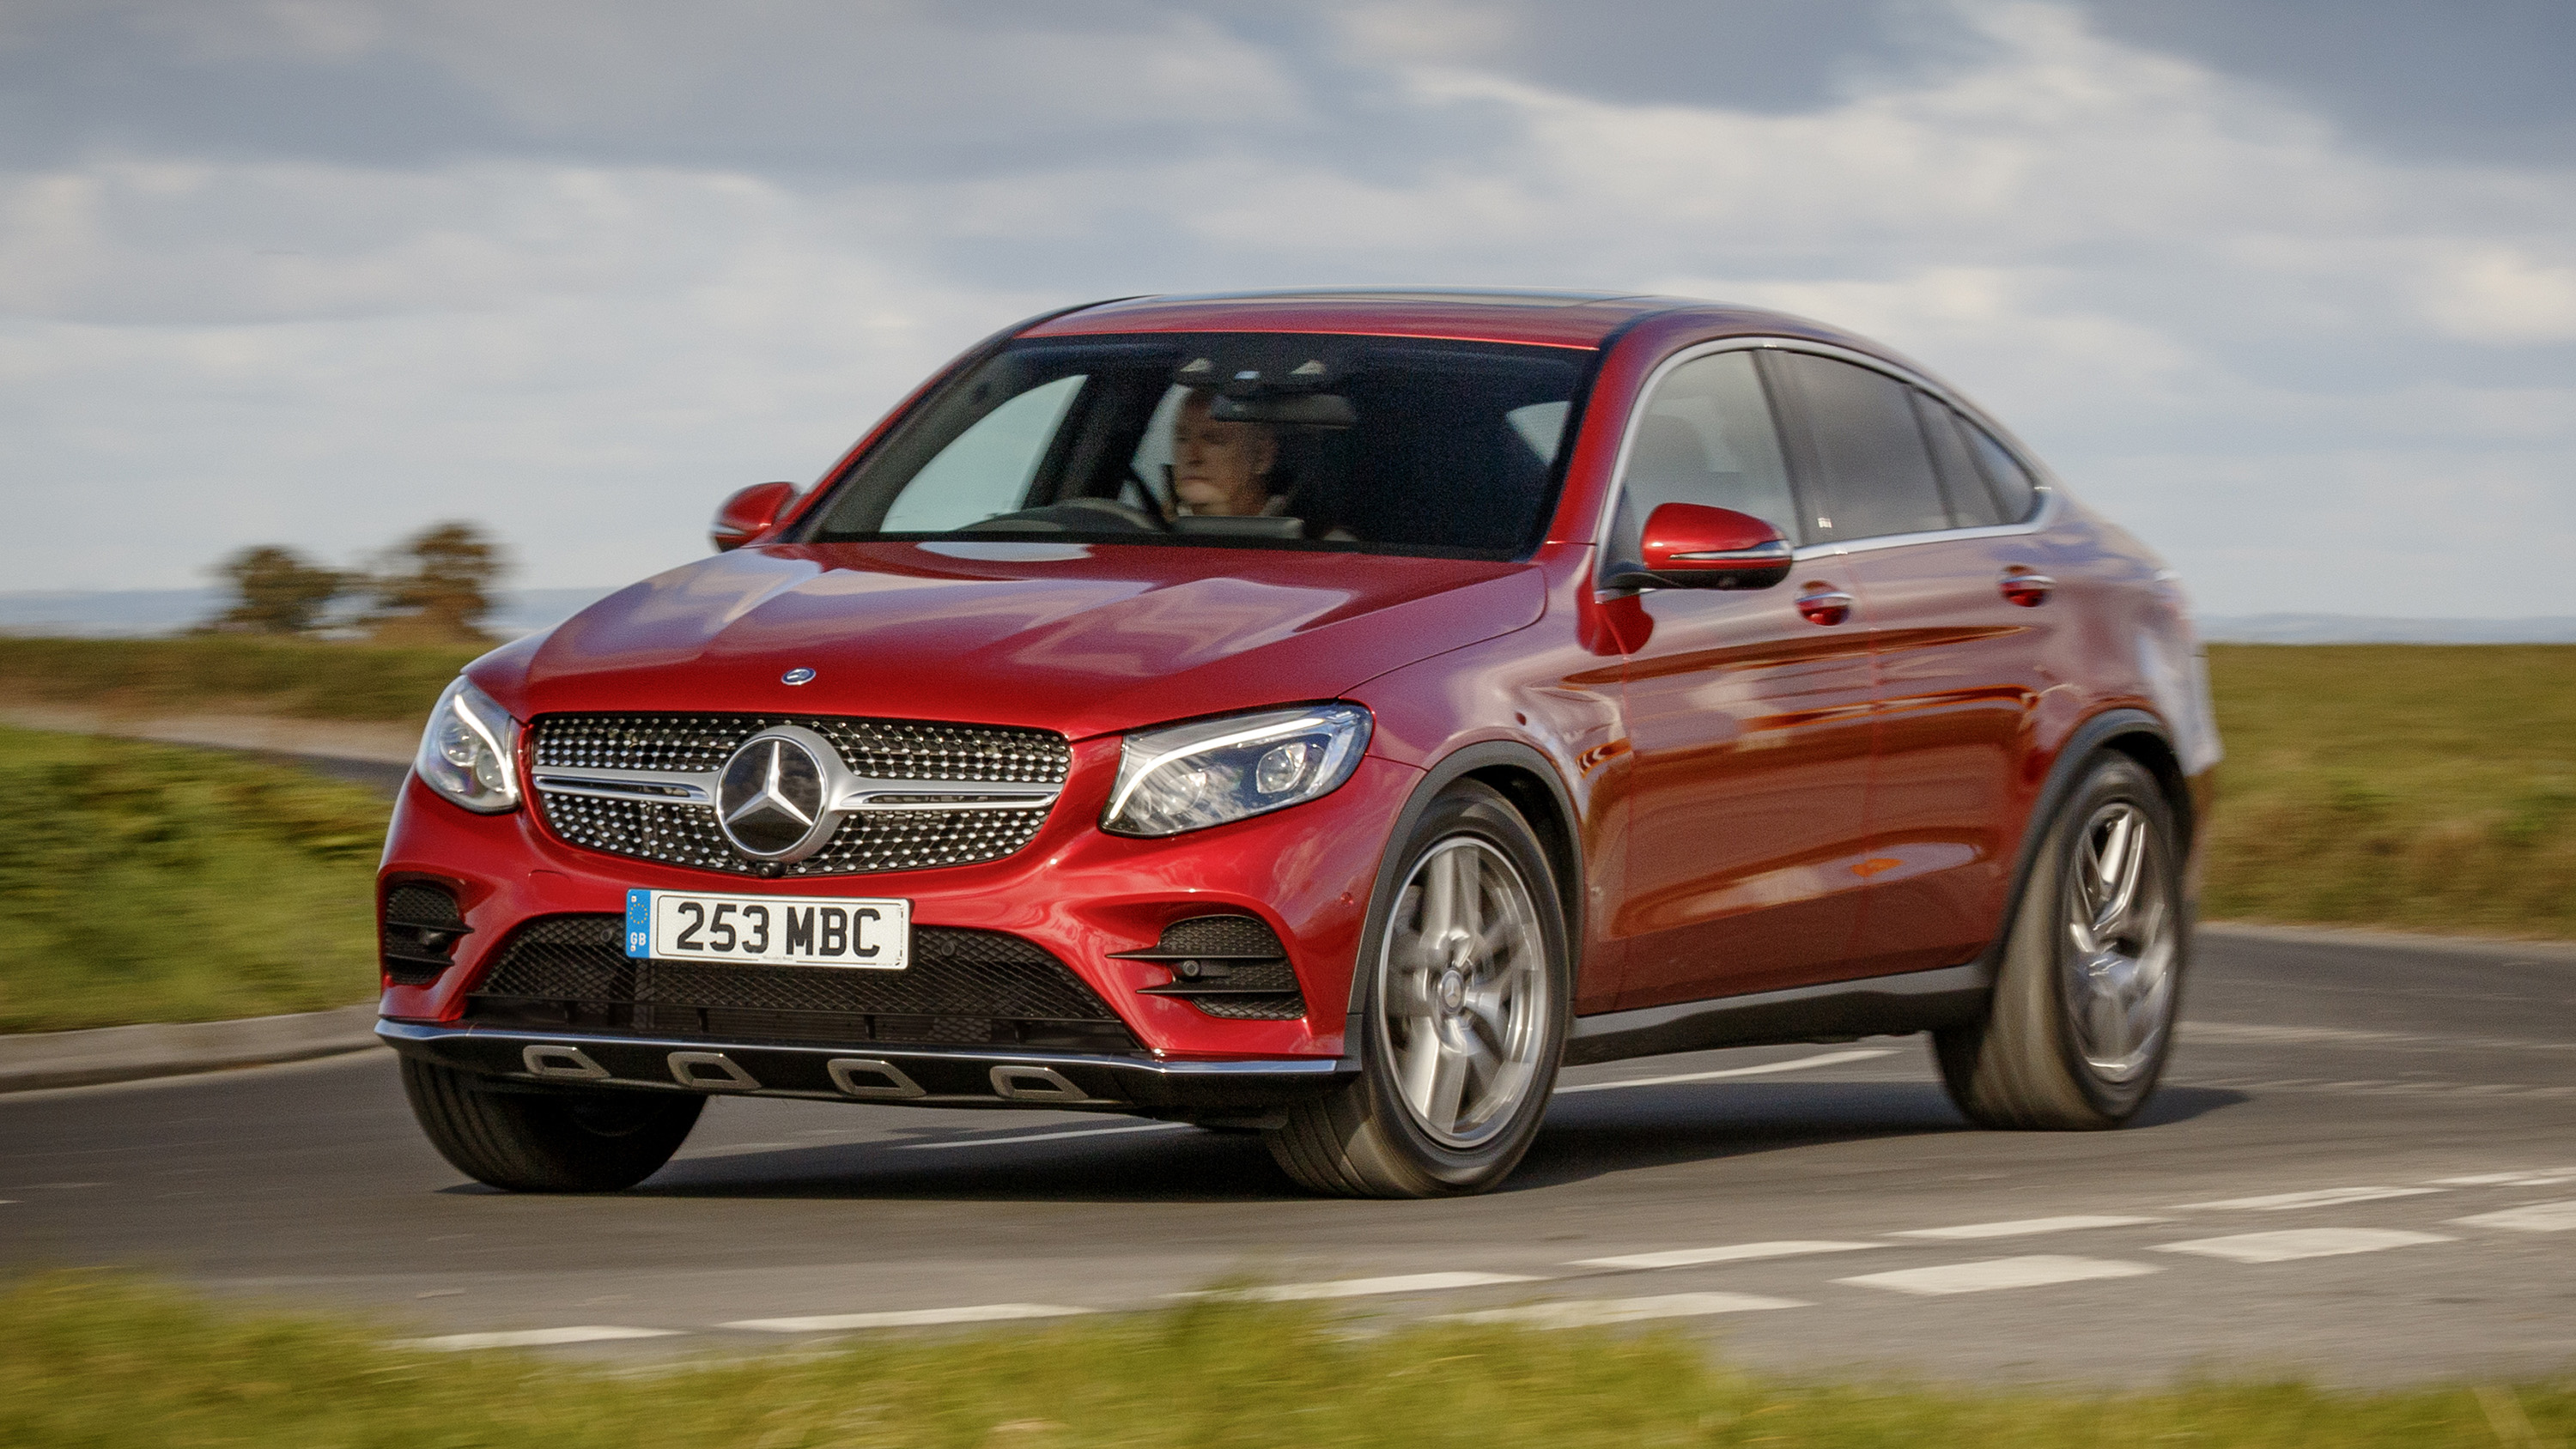 Mercedes Glc Coupe Review Glc250d Driven In Uk 2016 2019 Top Gear